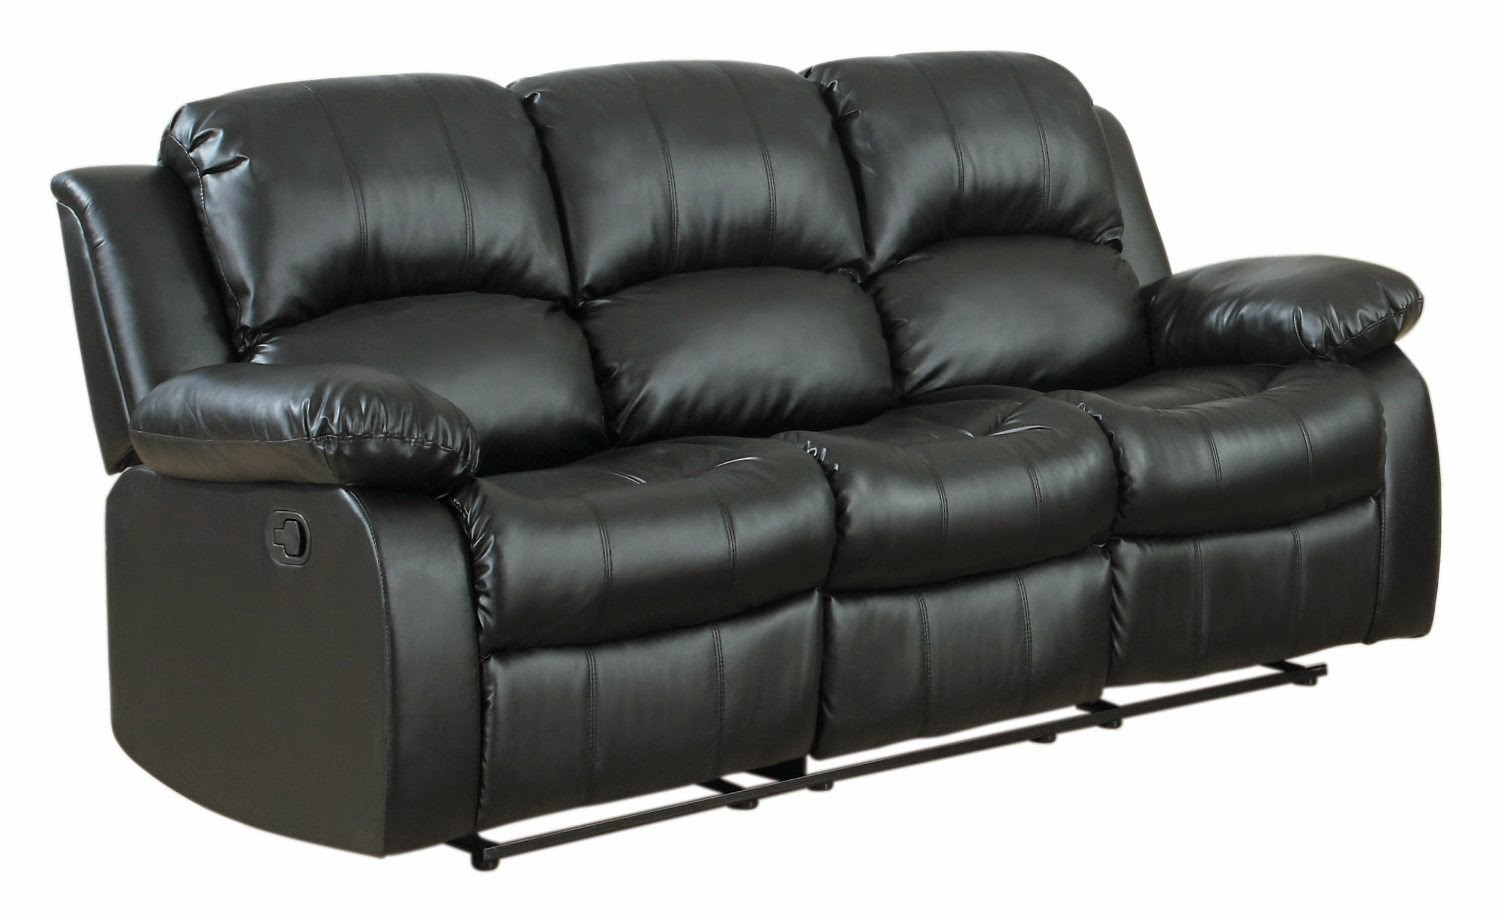 Cheap recliner sofas for sale black leather reclining sofa and loveseat Discount sofa loveseat